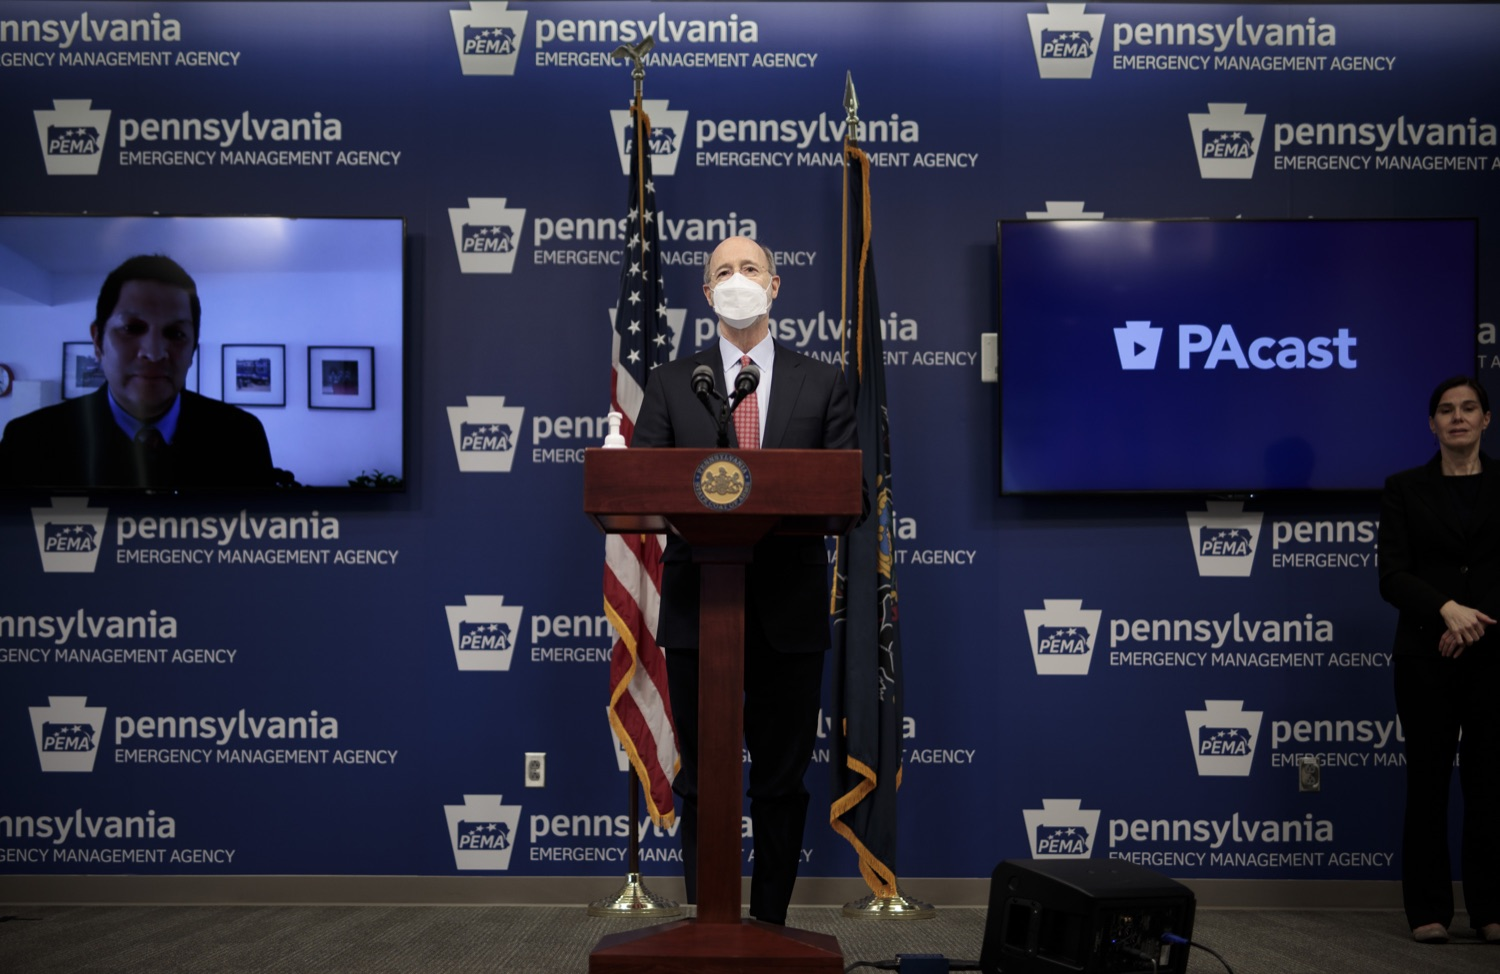 "<a href=""https://filesource.wostreaming.net/commonwealthofpa/photo/18535_gov_nellie_bly_dz_03.jpg"" target=""_blank"">⇣ Download Photo<br></a>Pennsylvania Governor Tom Wolf speaking at the press conference.  Governor Tom Wolf wants to bet on 44,000 students to help them earn a college degree while graduating with less debt and building successful lives in Pennsylvania. Today, the governor held a press conference to discuss how his historic Nellie Bly Scholarship Program would provide need-based financial assistance for students at 14 universities in the states system. Harrisburg, PA  February 17, 2021"